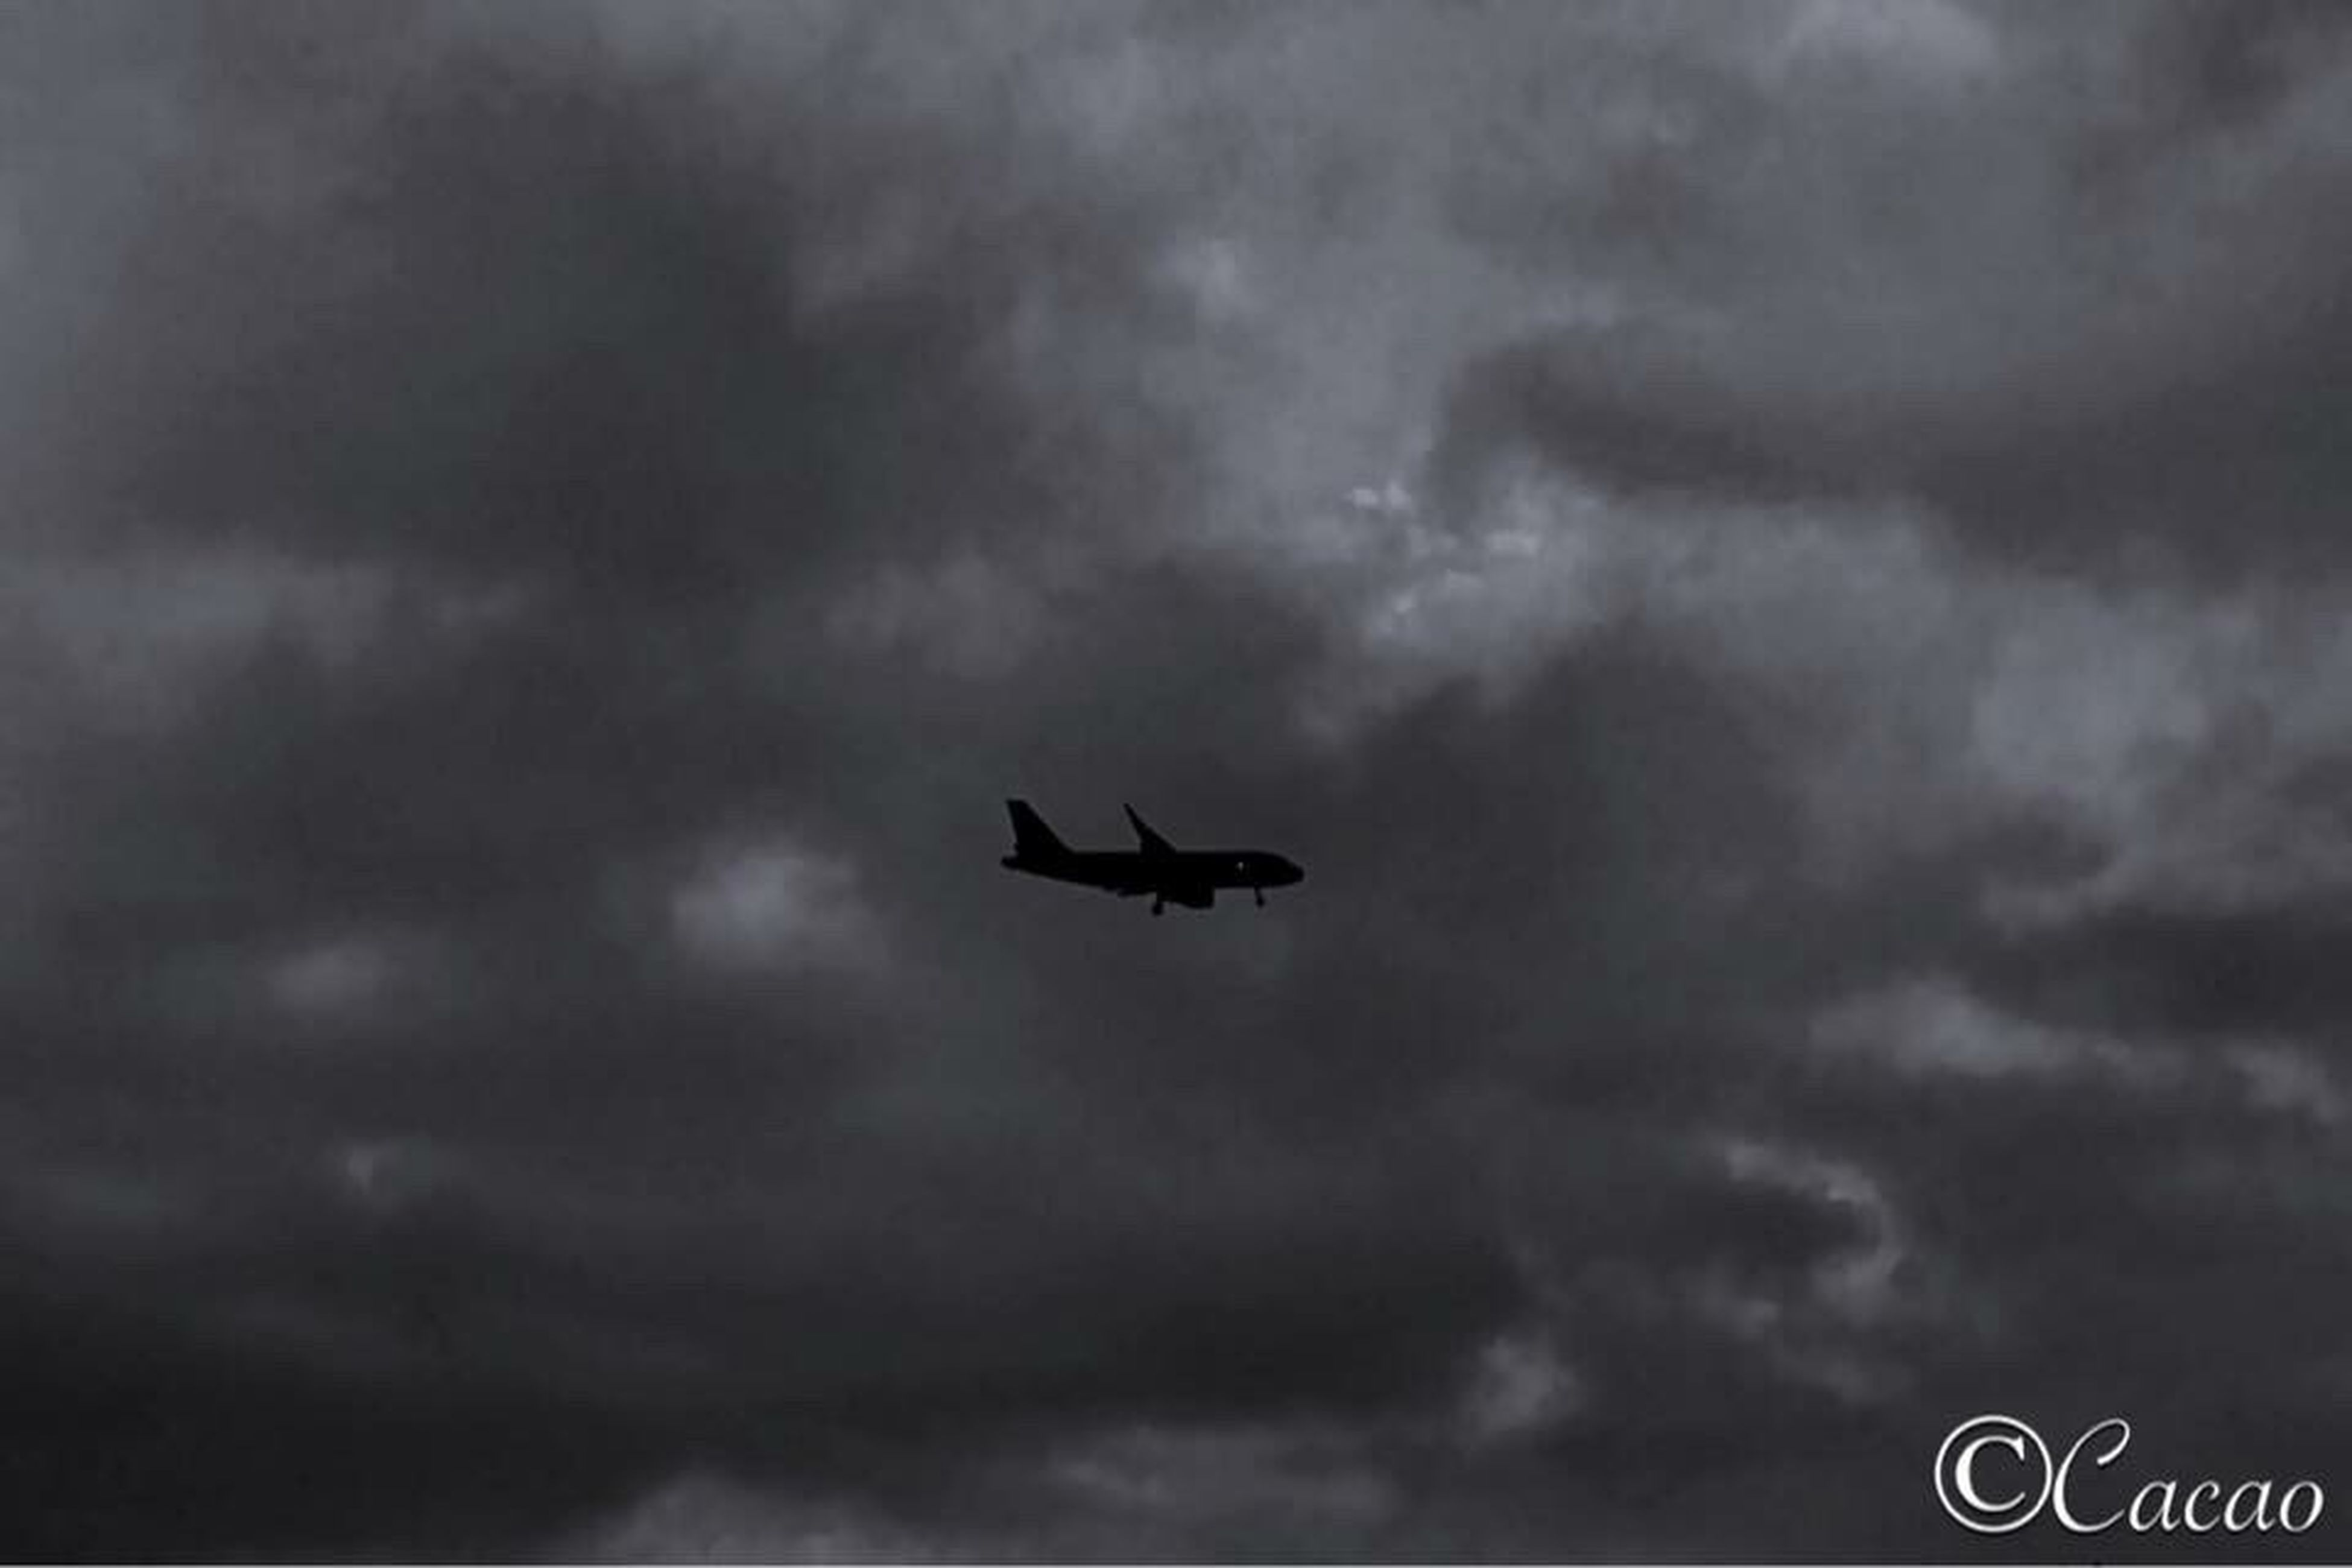 mode of transport, transportation, airplane, flying, air vehicle, mid-air, travel, low angle view, silhouette, on the move, sky, flight, journey, cloudscape, cloud, cloud - sky, aircraft, airways, scenics, outdoors, majestic, nature, ominous, day, no people, atmospheric mood, tranquility, tranquil scene, cloudy